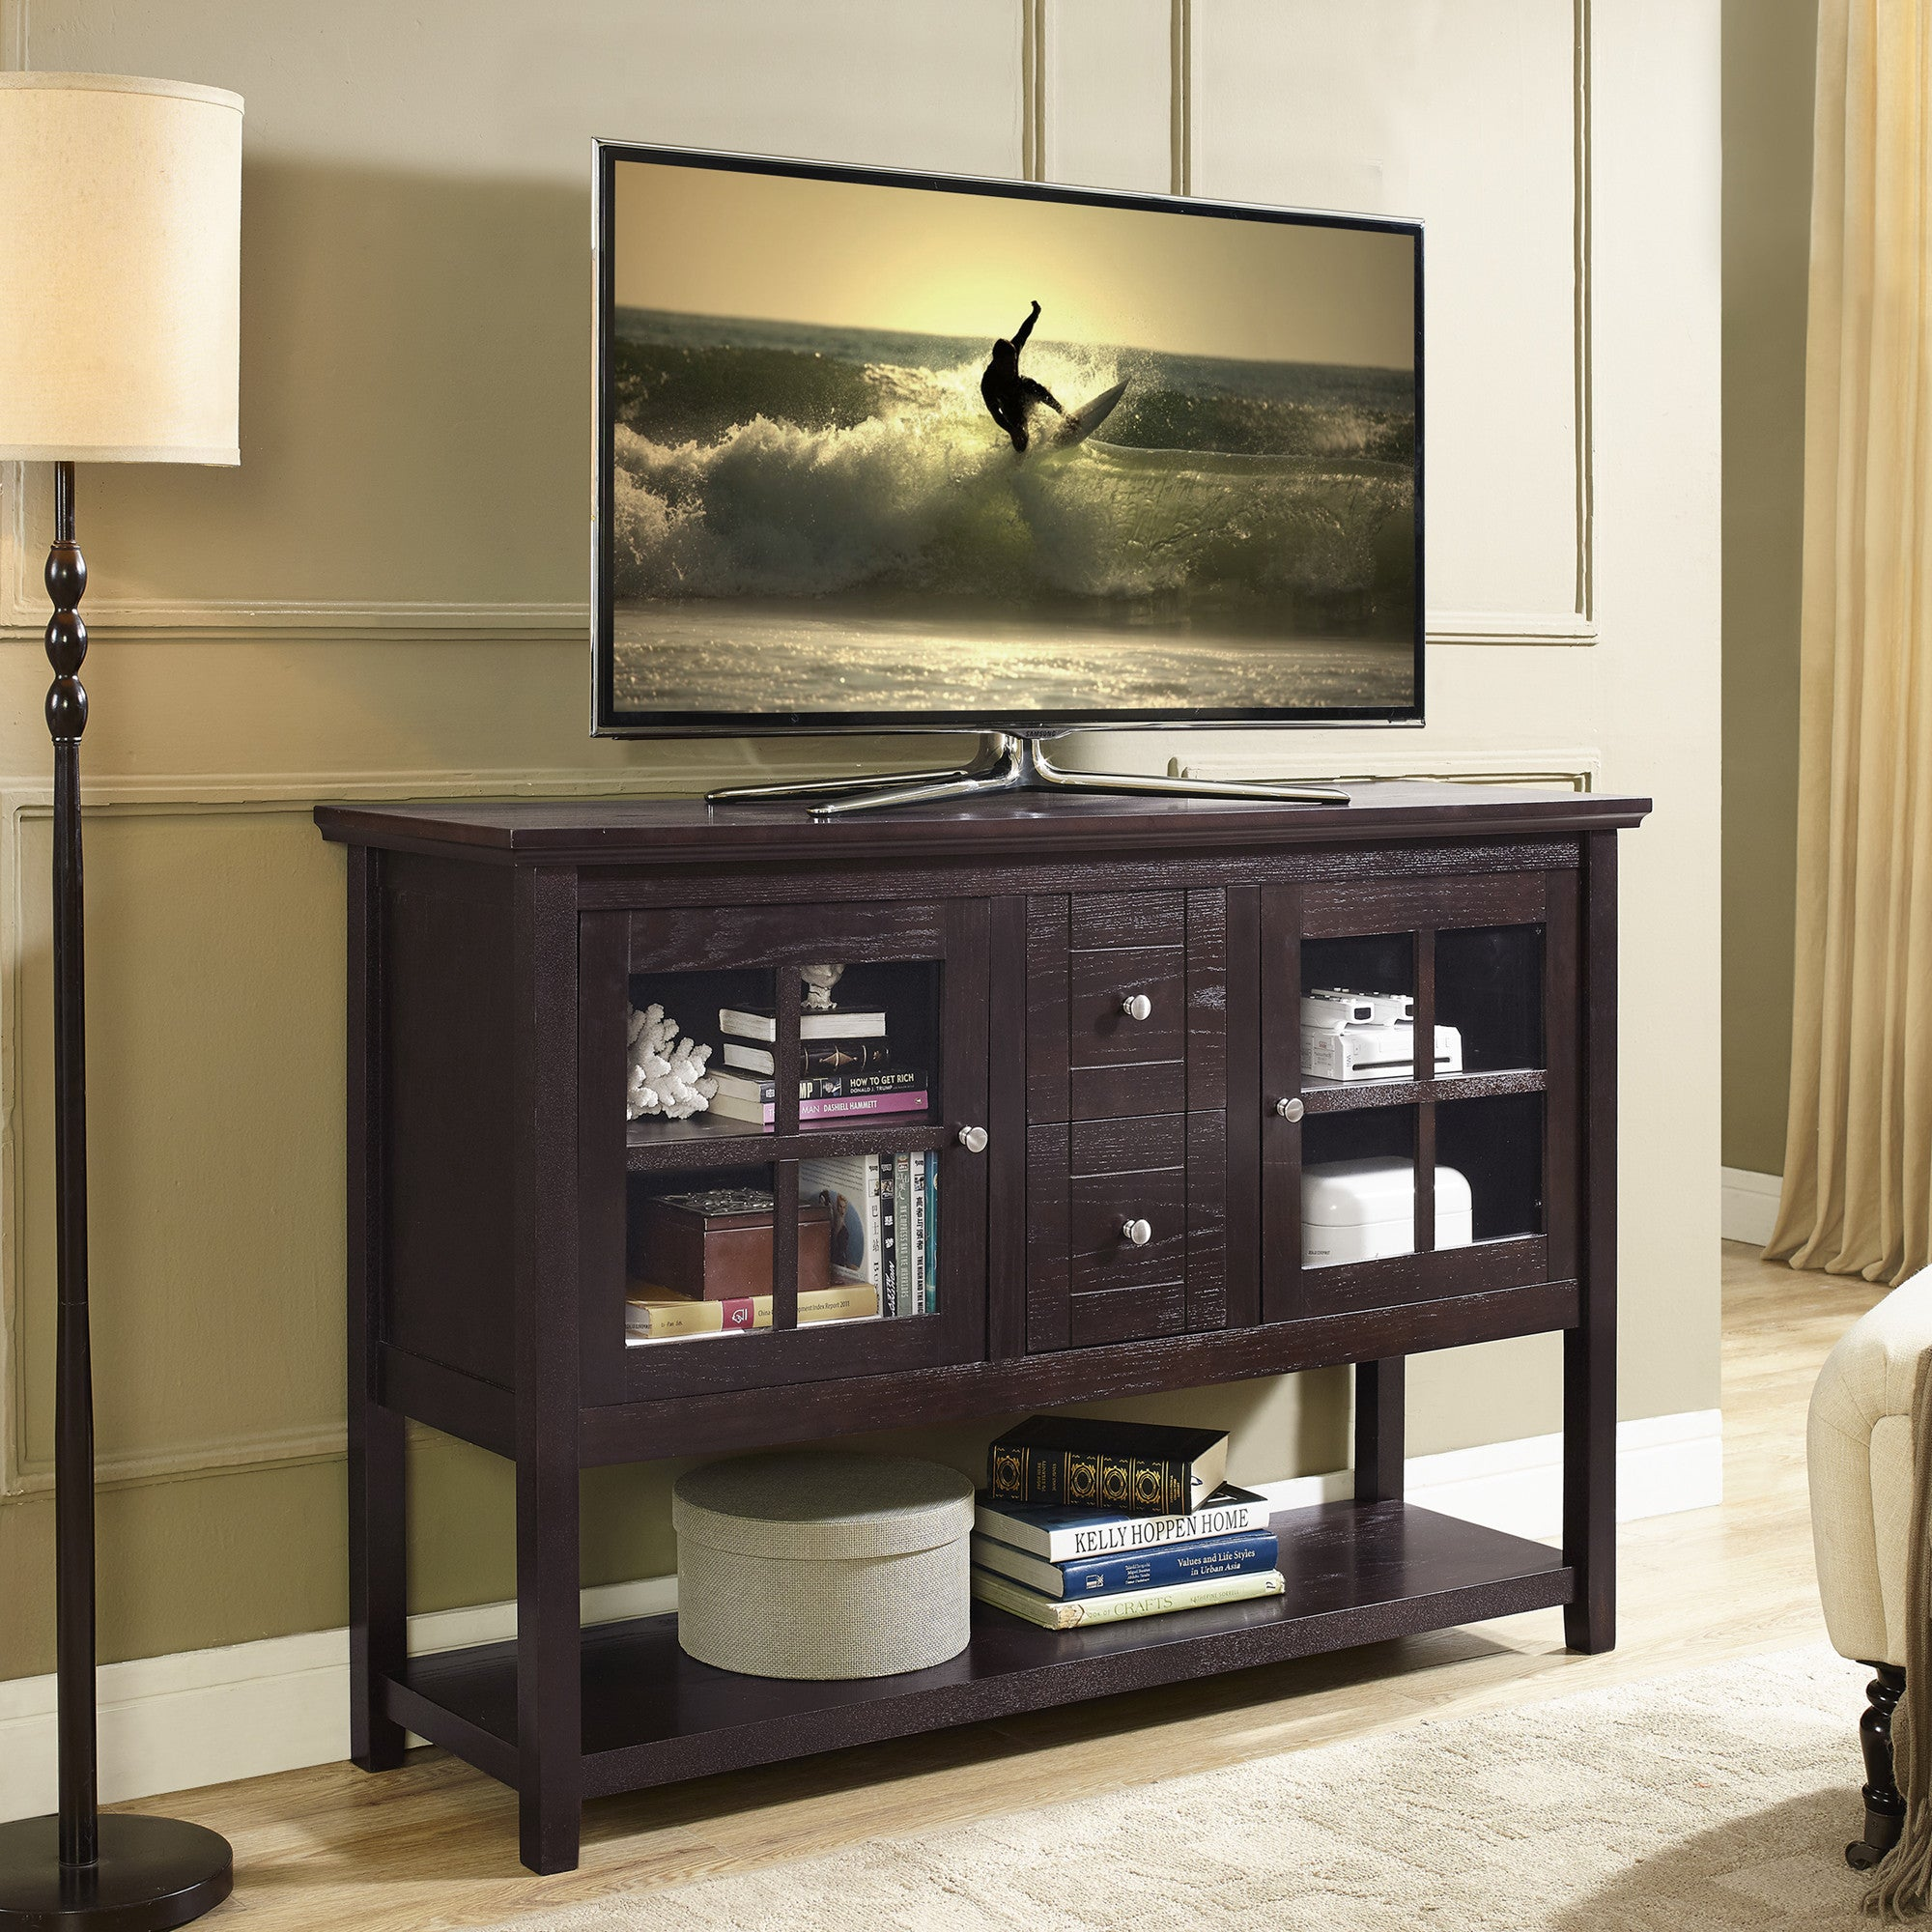 Bedroom height 53 modern espresso flat screen tv stand for Flat screen tv bedroom ideas